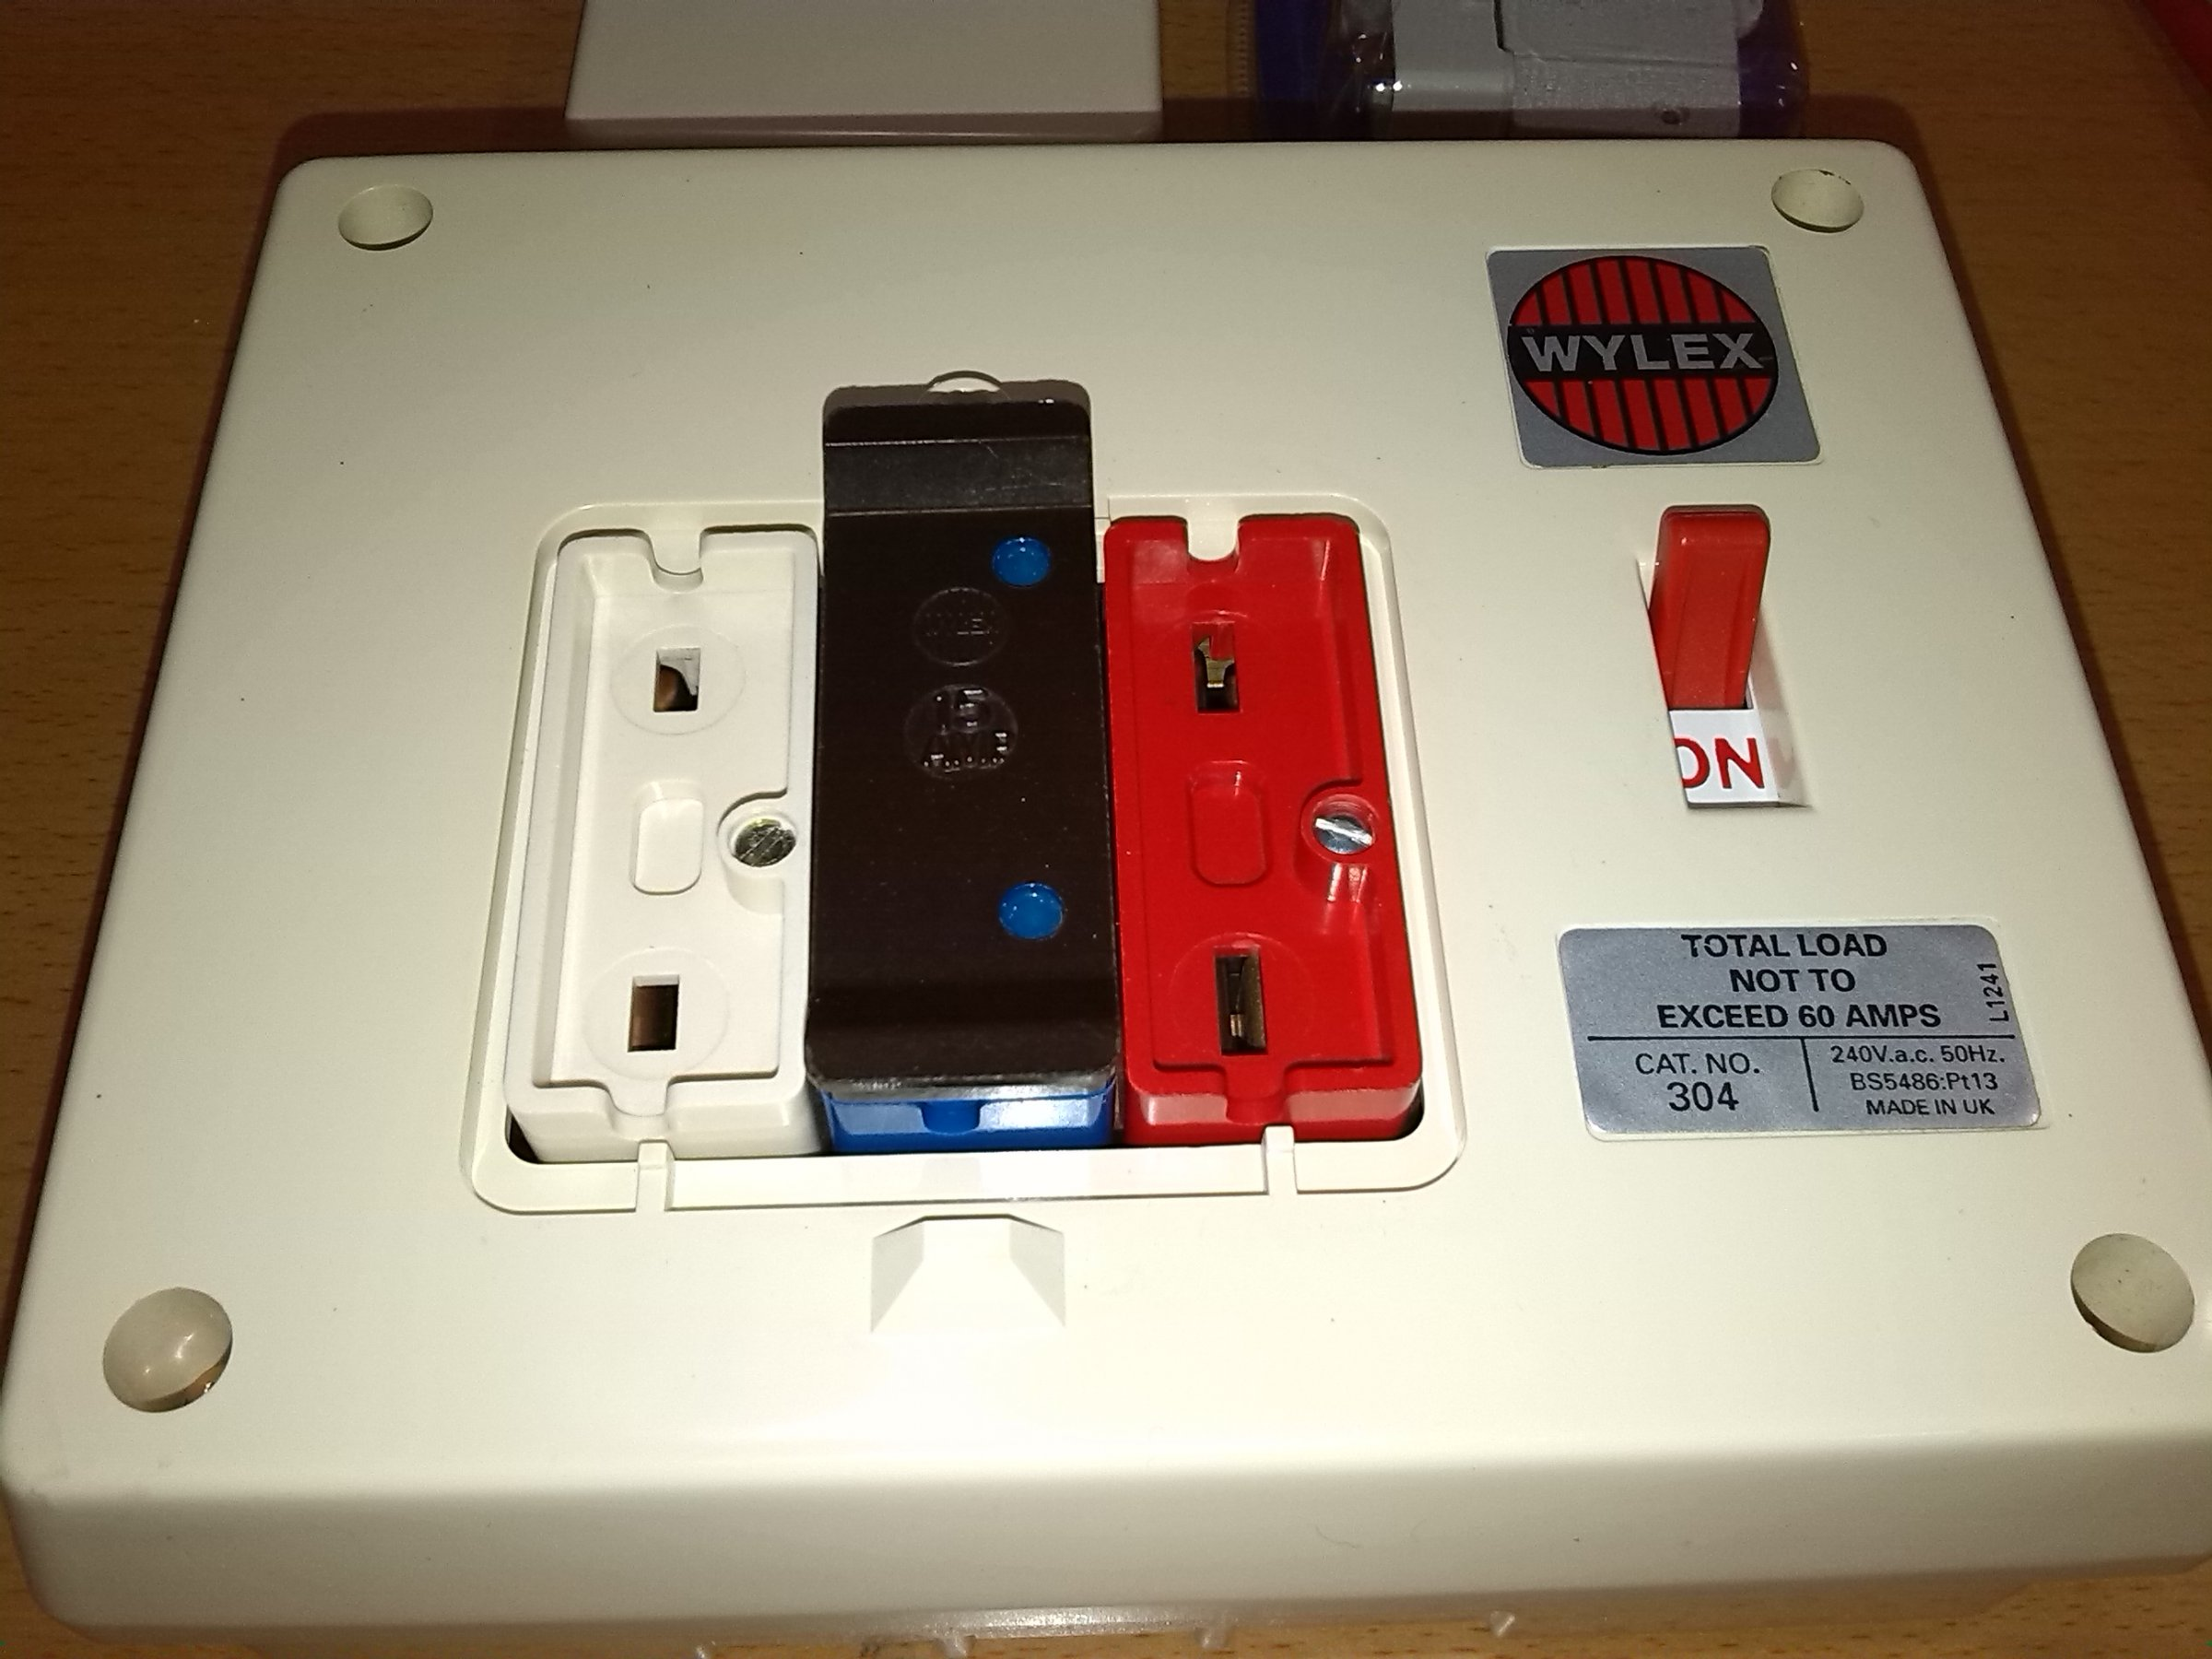 Wylex Fuse Box Just Another Wiring Data Old Style Fuses And Traditional Rewireable Fusebox Diynot Forums Basic Electrical Units These Are Pictures Of An Fashioned